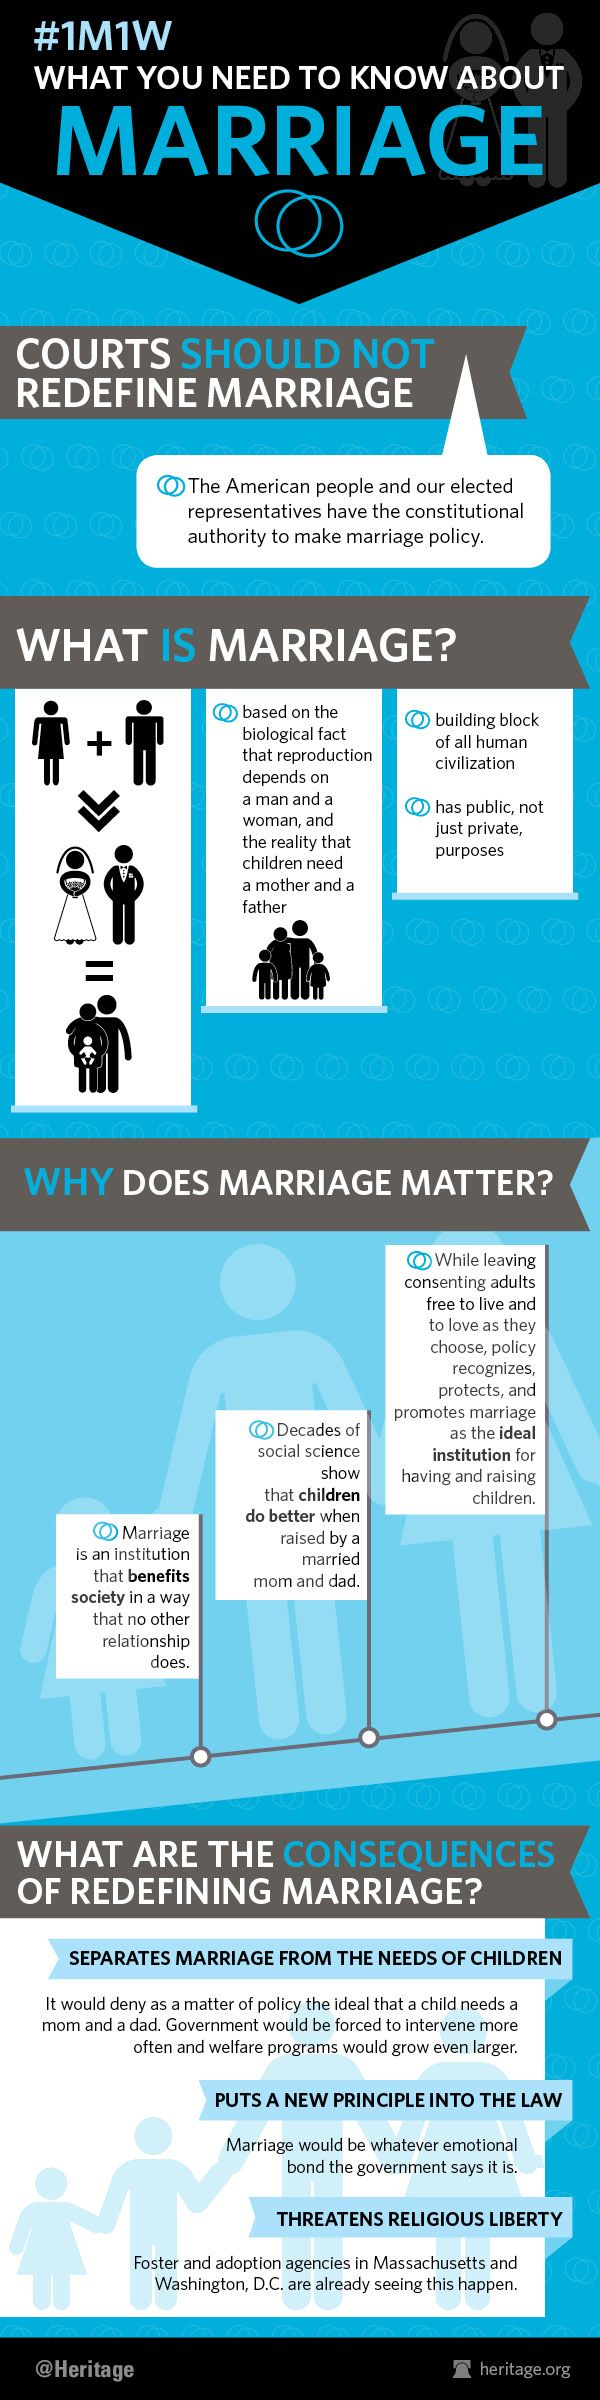 Tomorrow morning, the Supreme Court will release its opinions in cases challenging state and federal laws that define marriage as the union of a man and a woman. Here are five things that you should know about these cases and a list of ways that you can be prepared to tell the truth about marriage after tomorrow's decisions. #prop8 #marriage #DOMA